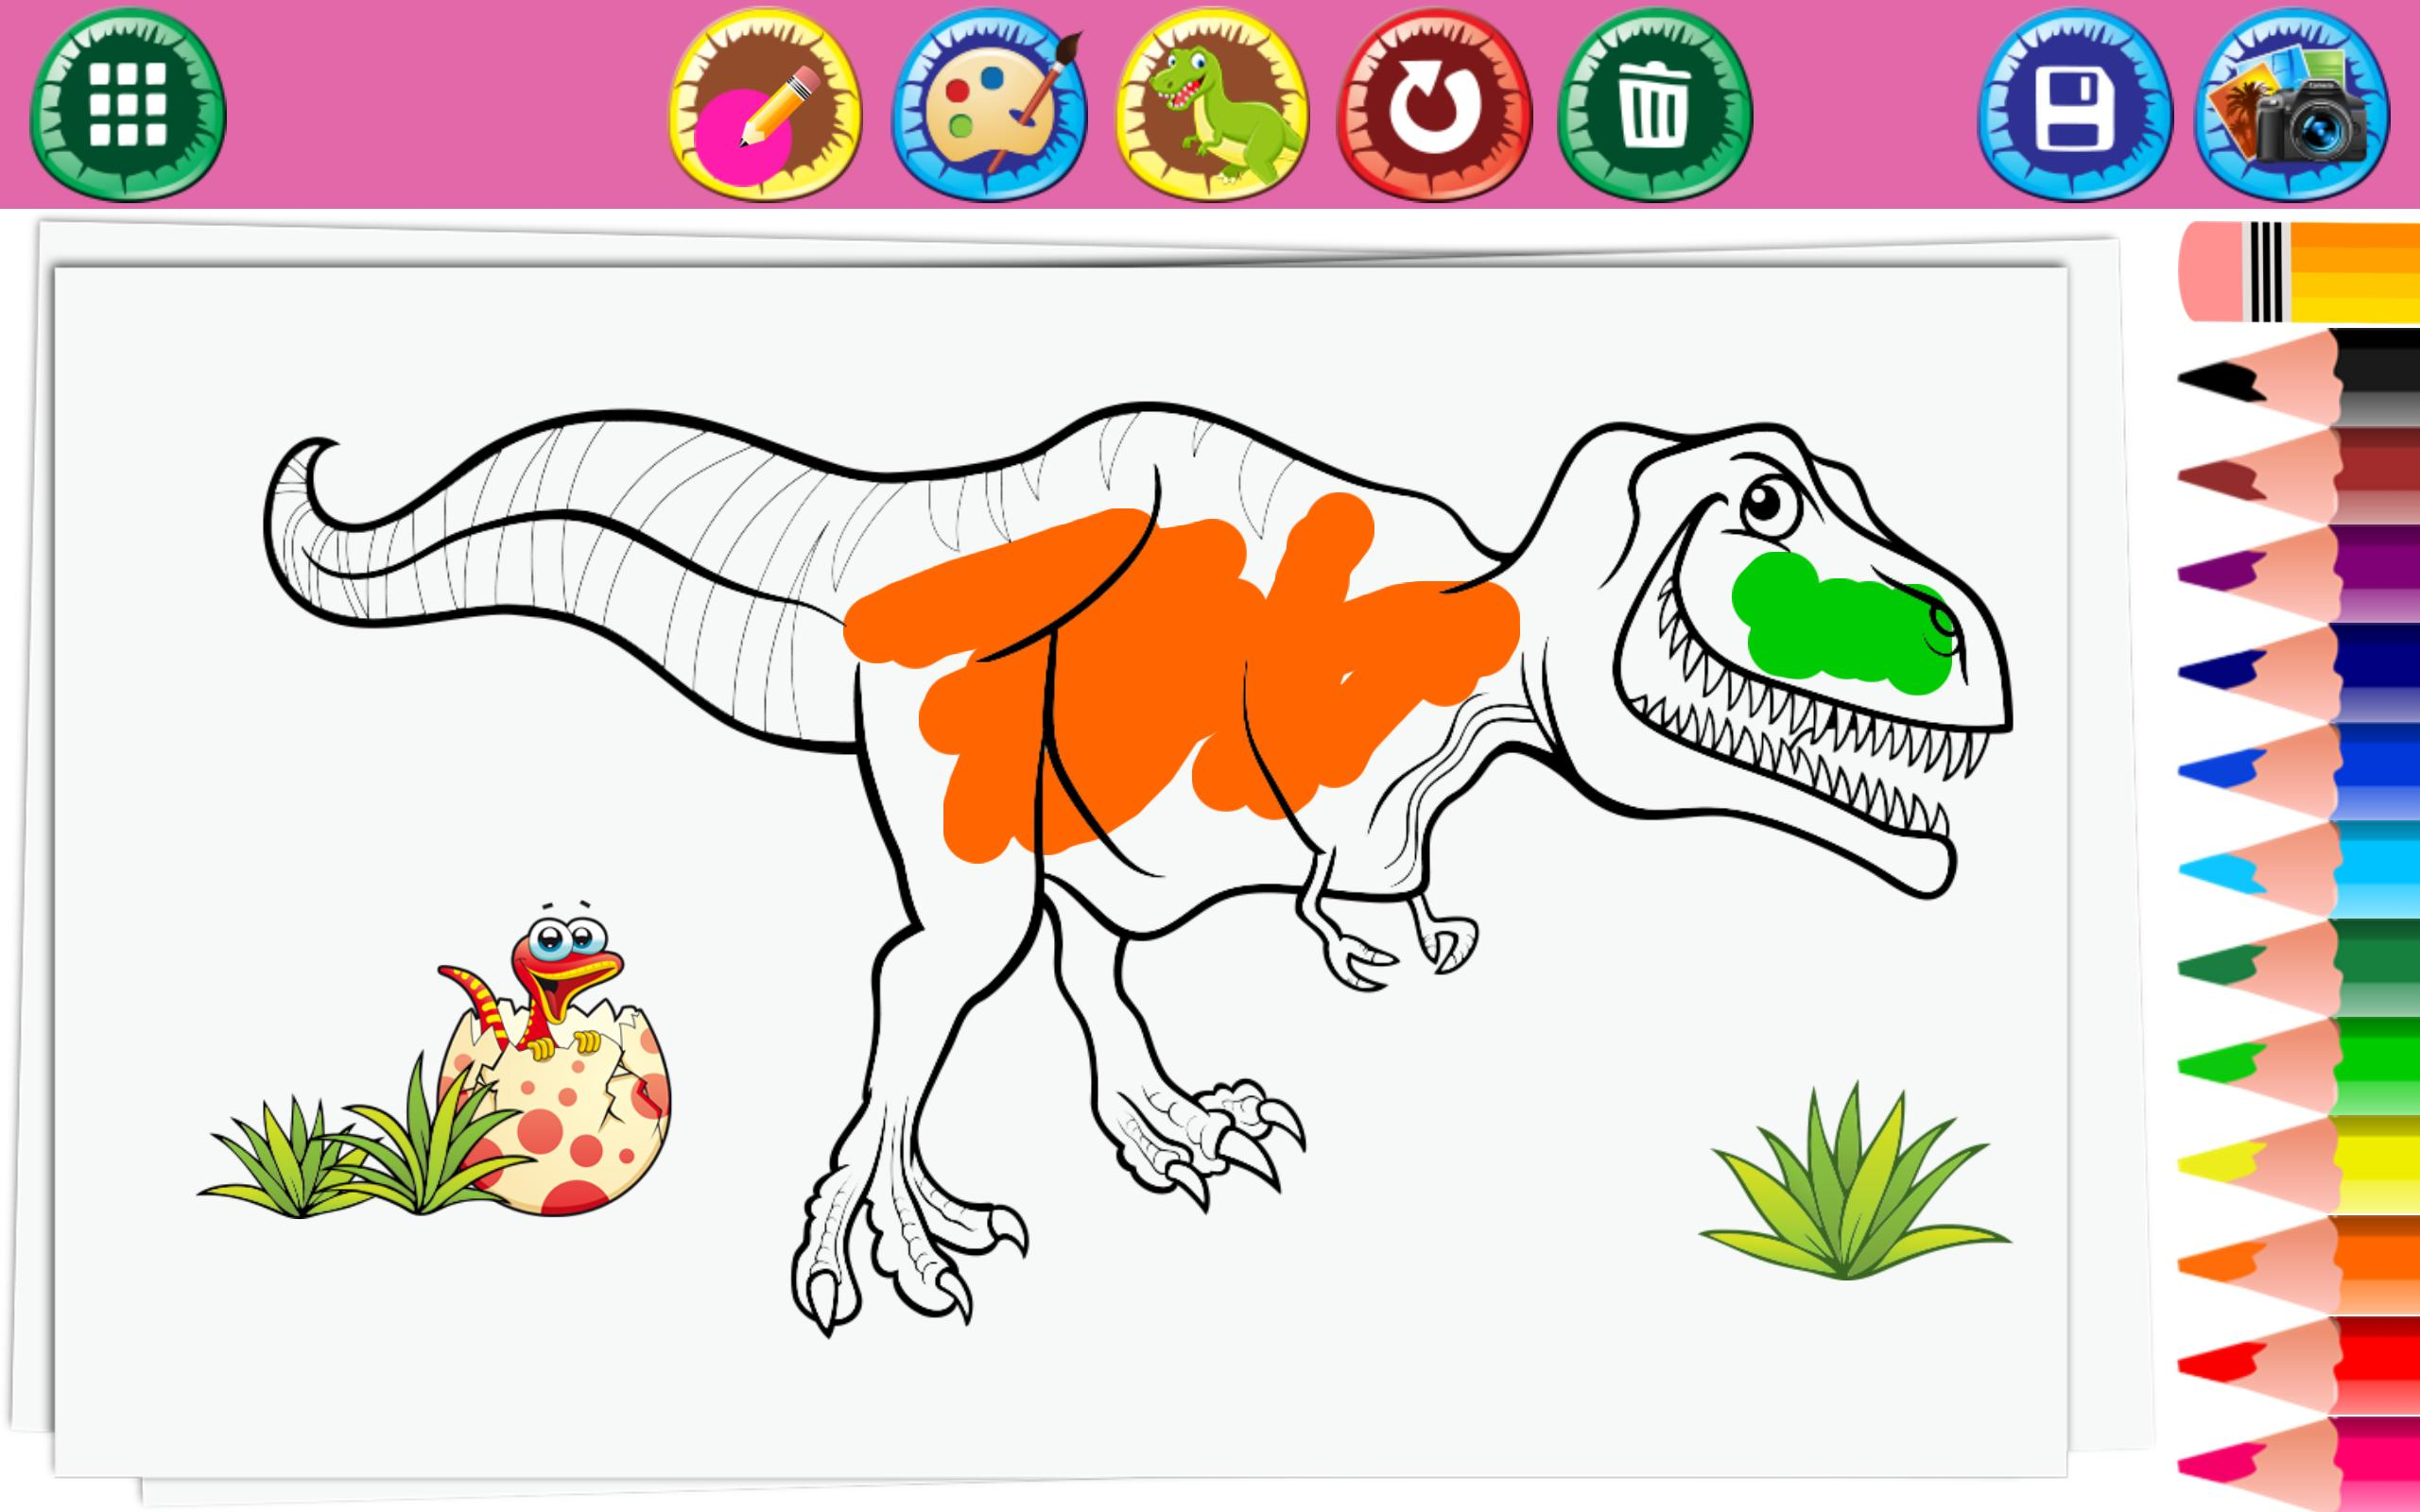 Halaman Mewarnai Dinosaurus For Android APK Download